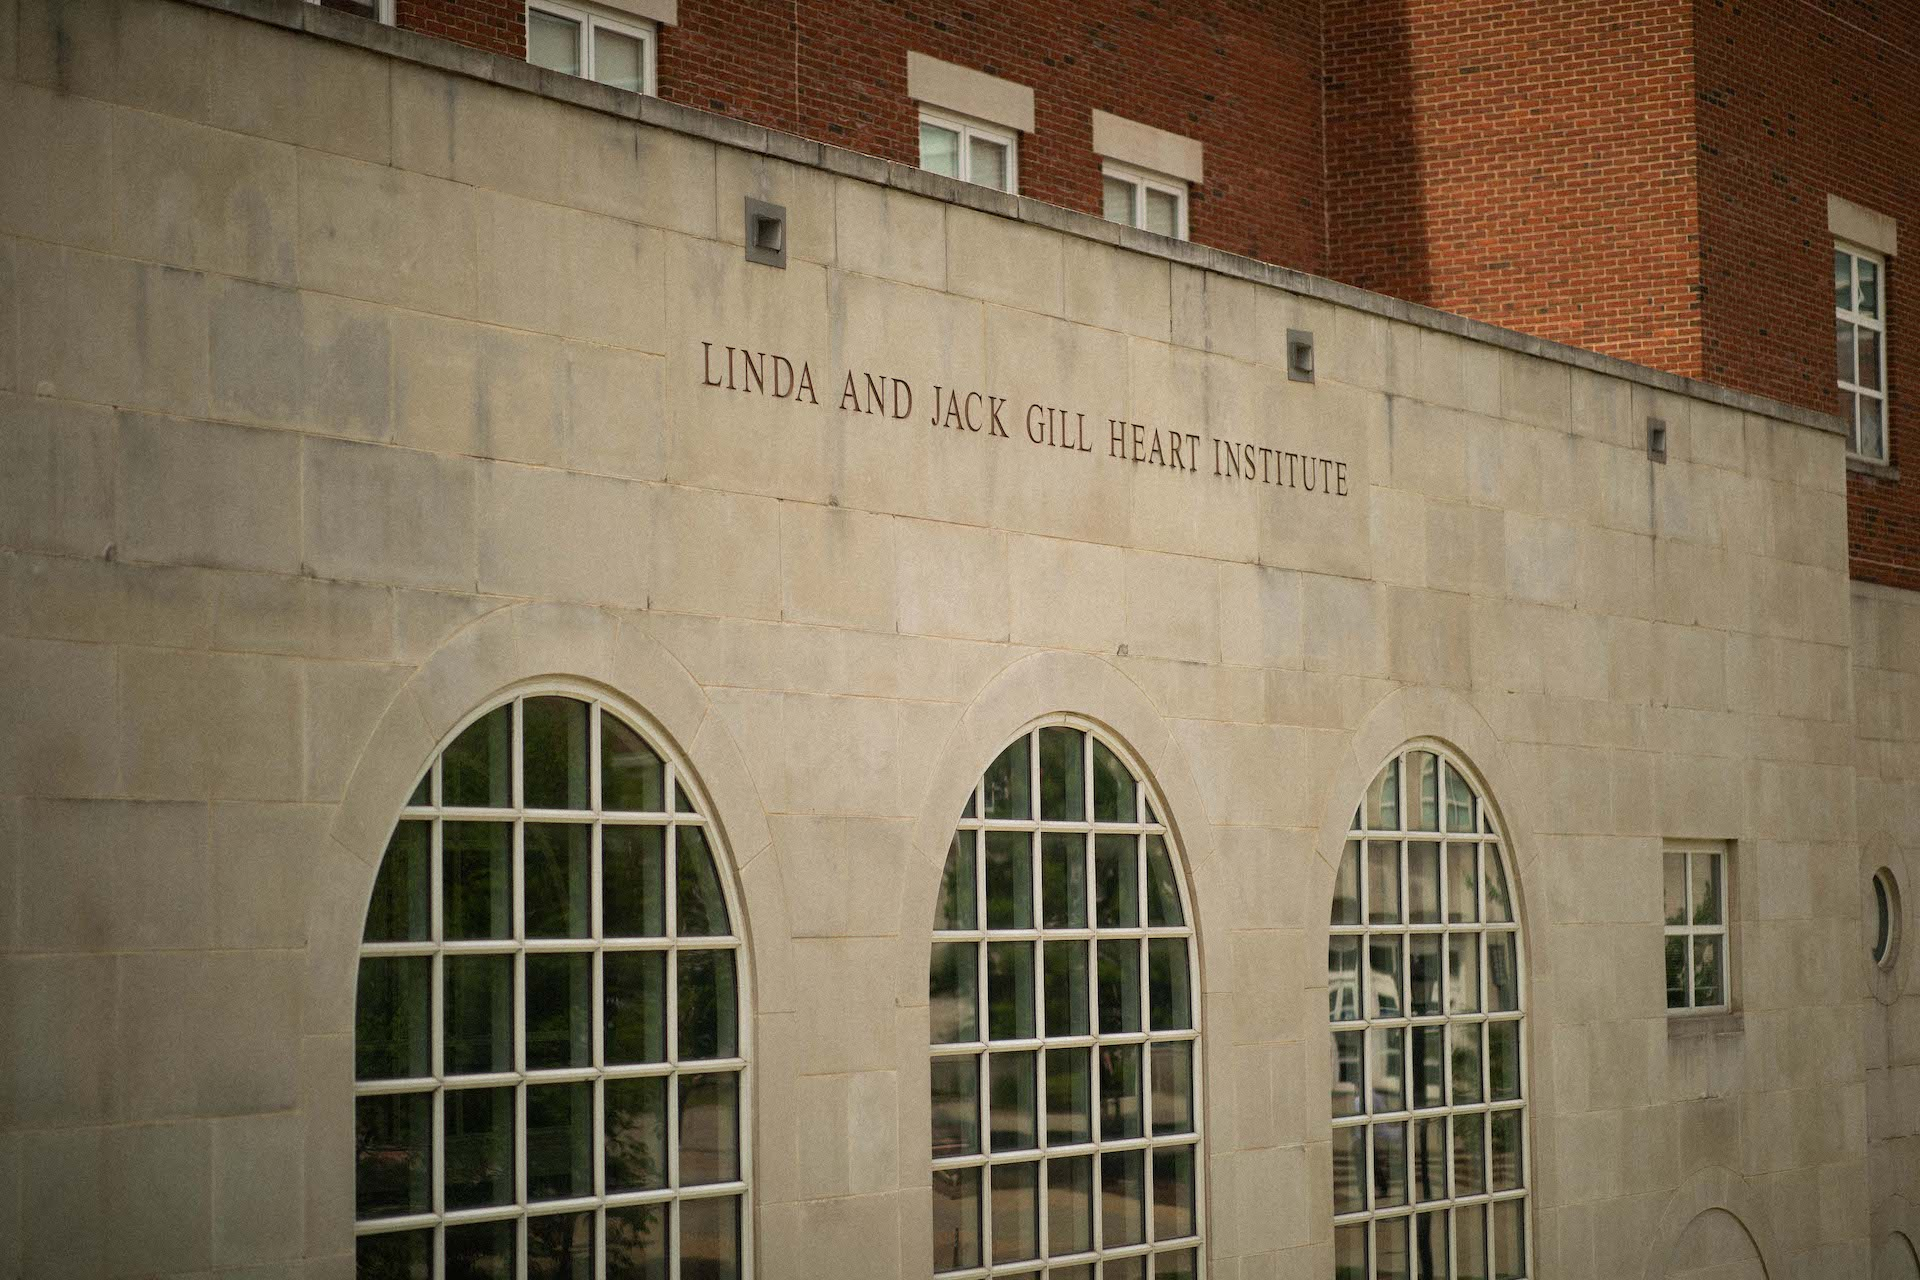 The Linda and Jack Gill Heart Institute building.